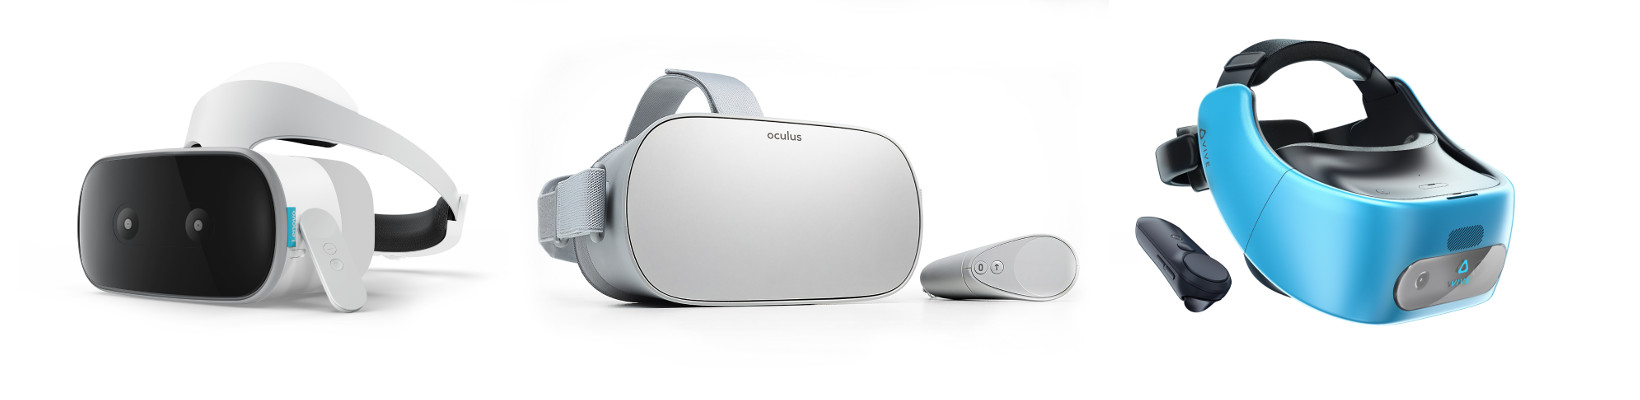 Samsung GearVR powered by Oculus, Google Daydream View and Acatel Cricket